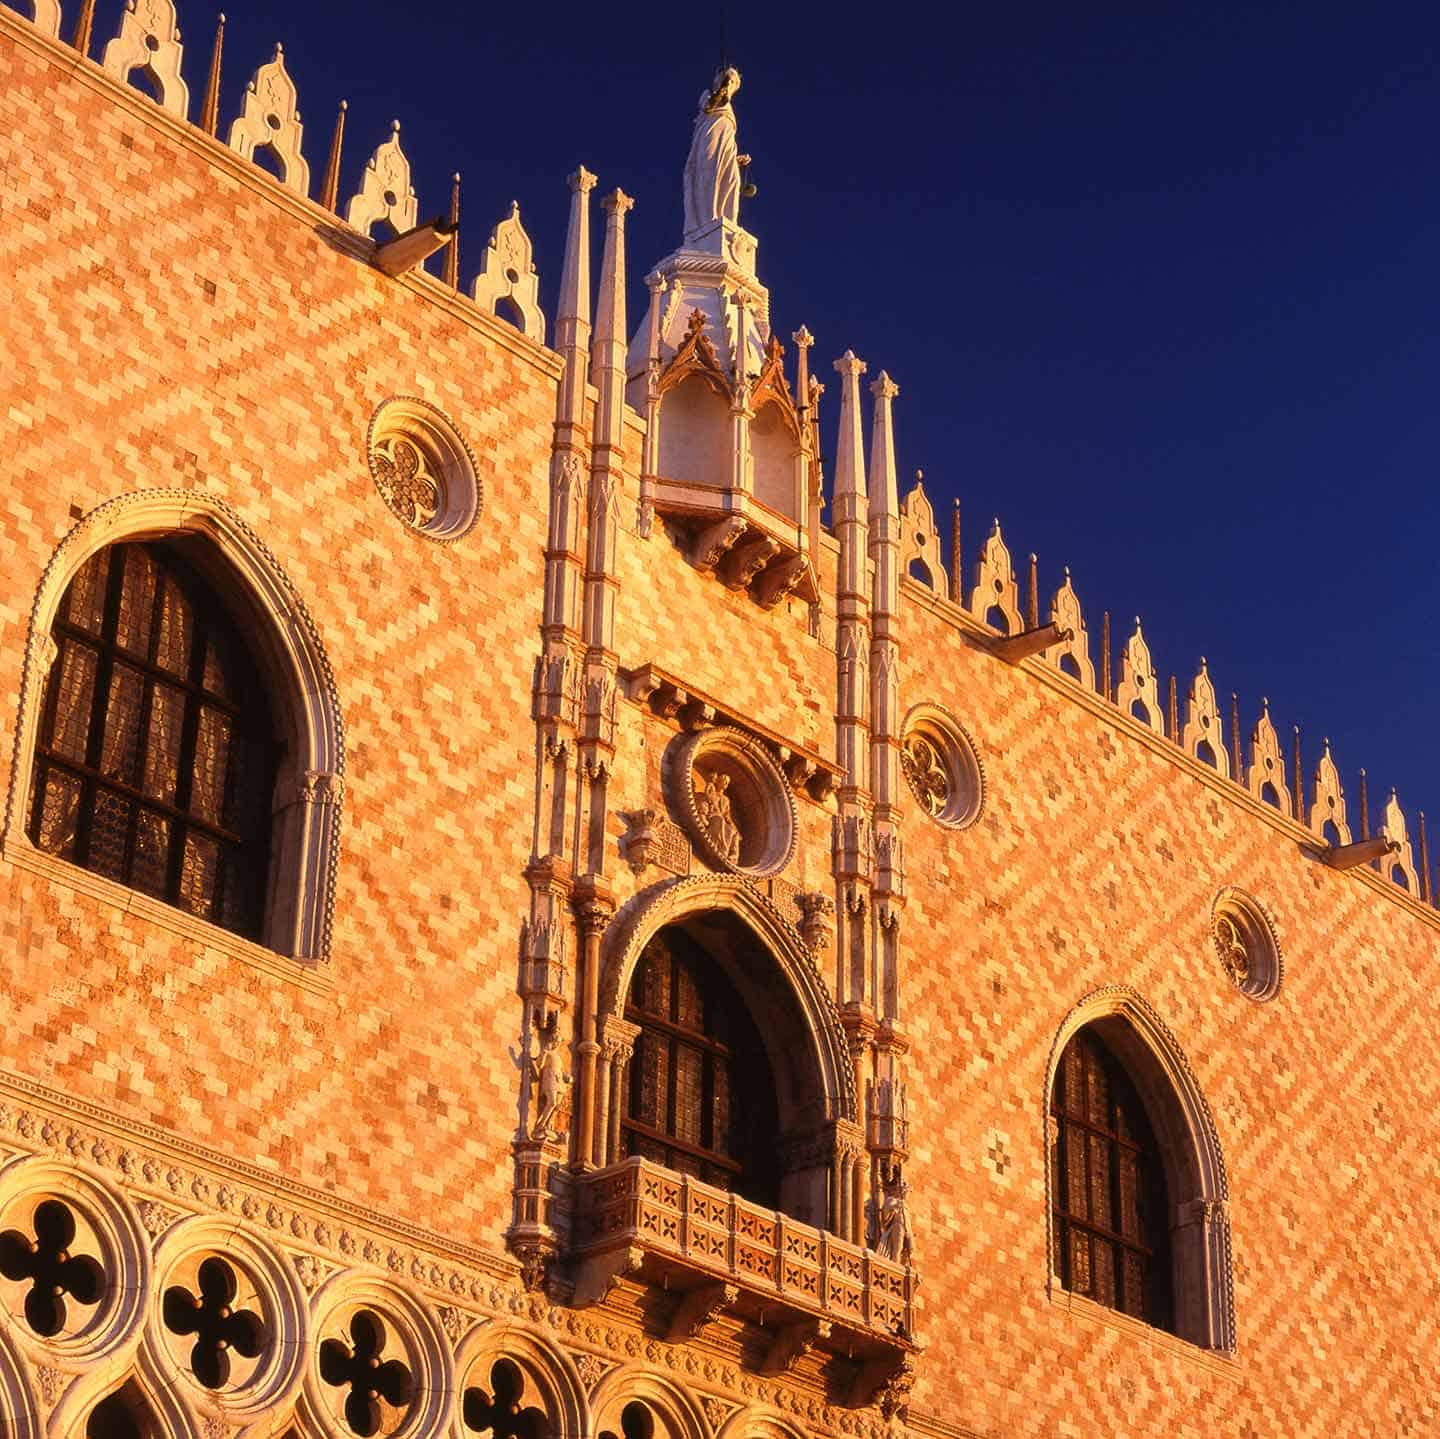 Image of the Doge's Palace in Venice